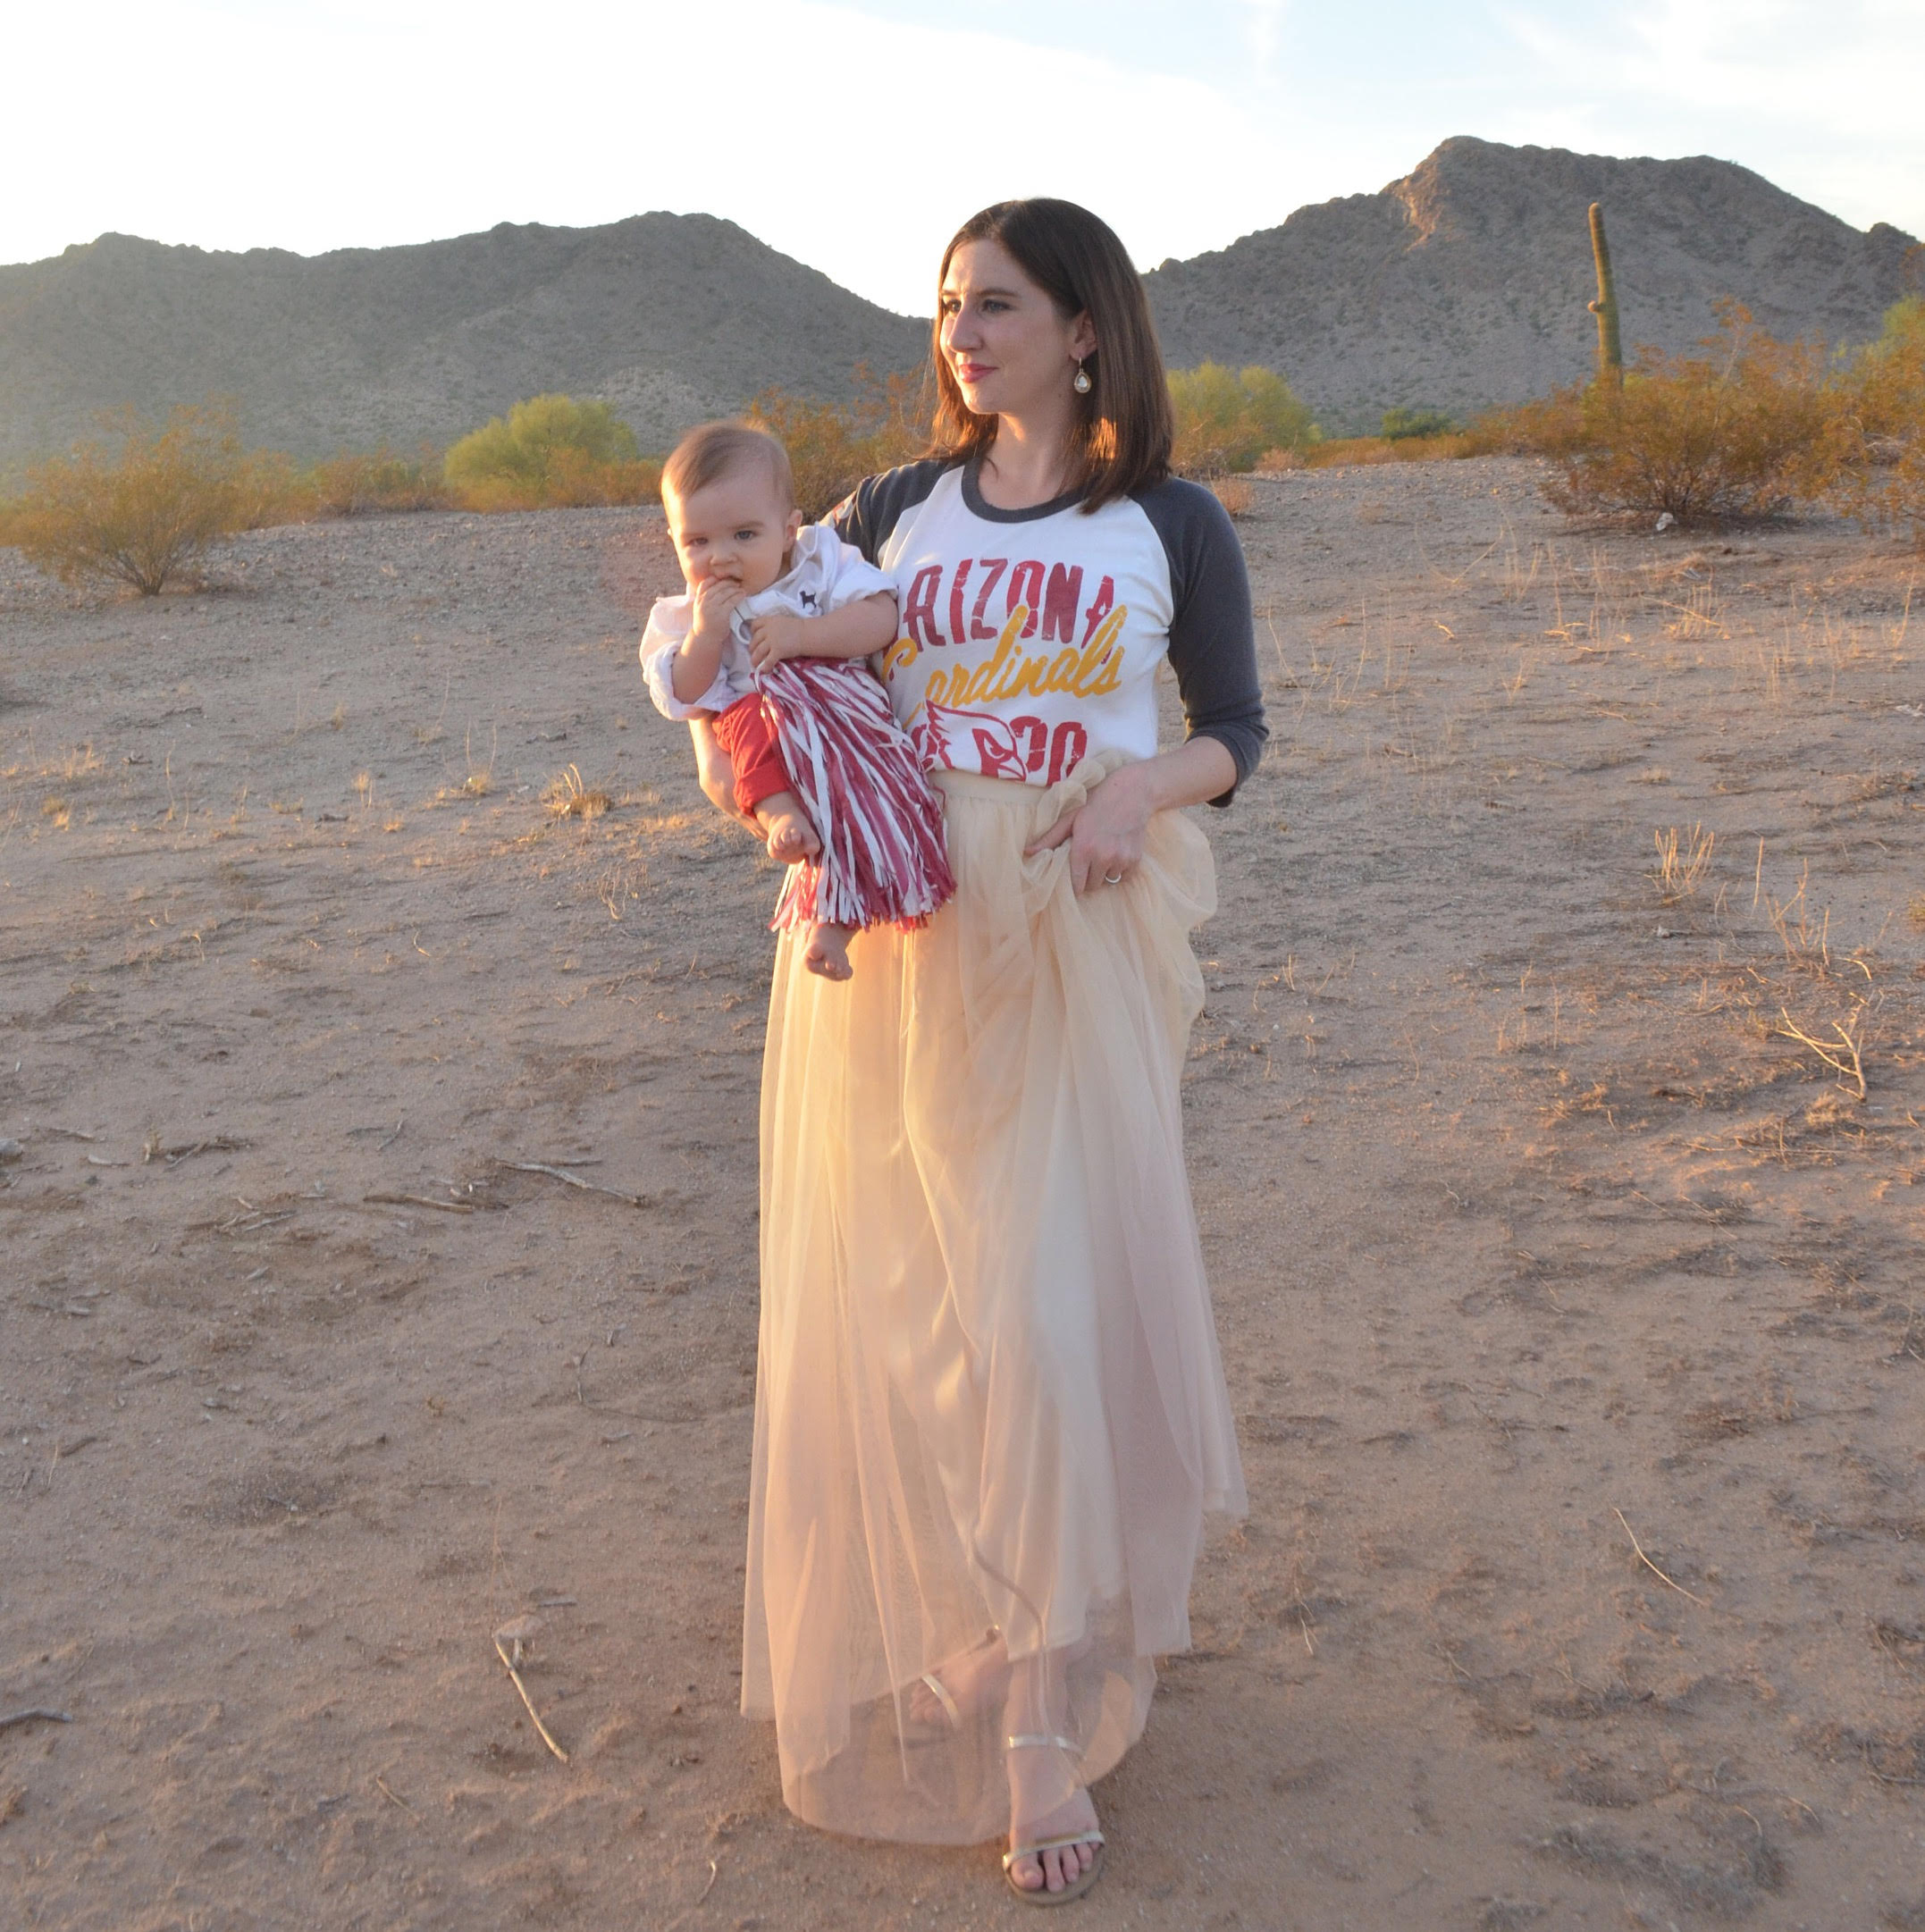 7 Tips for Tailgating with A Baby | Momma Society-The Community of Modern Moms | www.MommaSociety.com | #MyNFLStyle